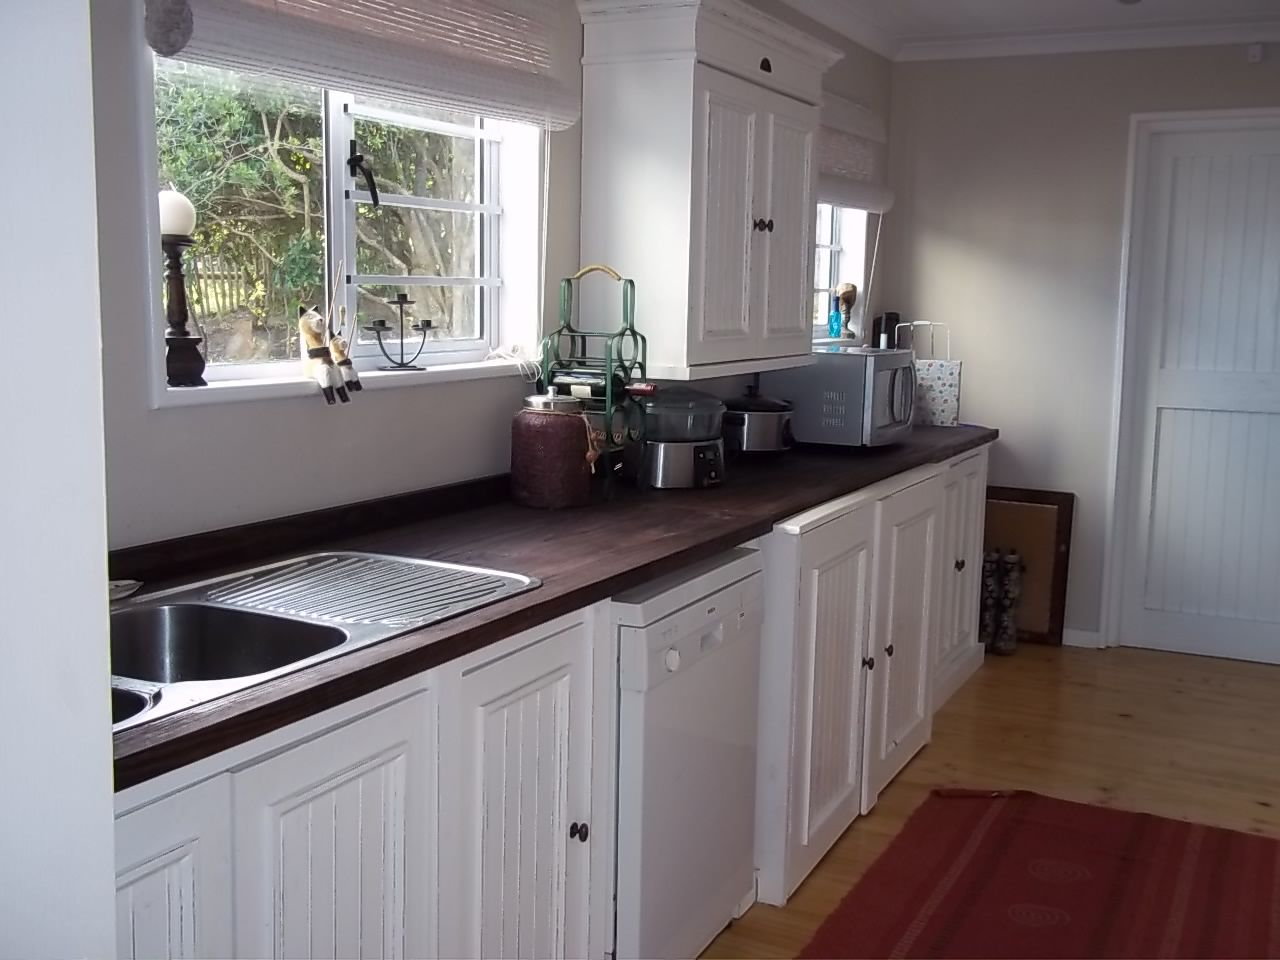 Elegance Sink Unit with space for Dishwasher on the right ...